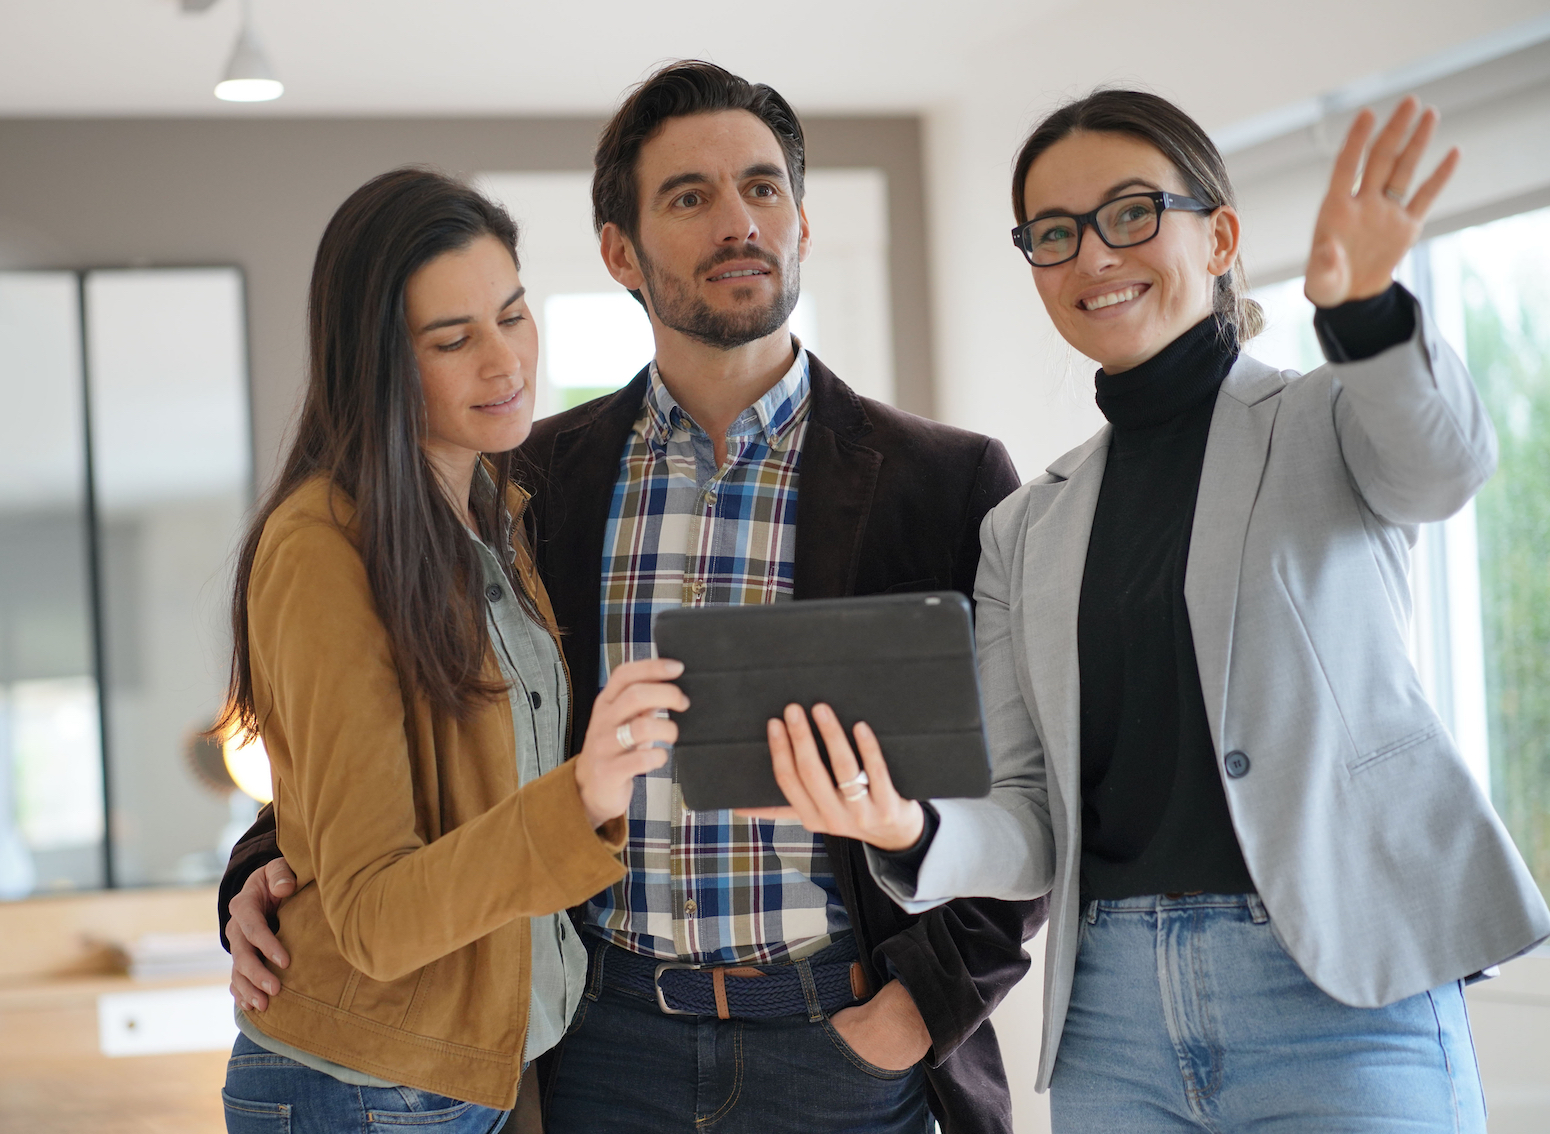 Real estate agent showing a property to a couple.